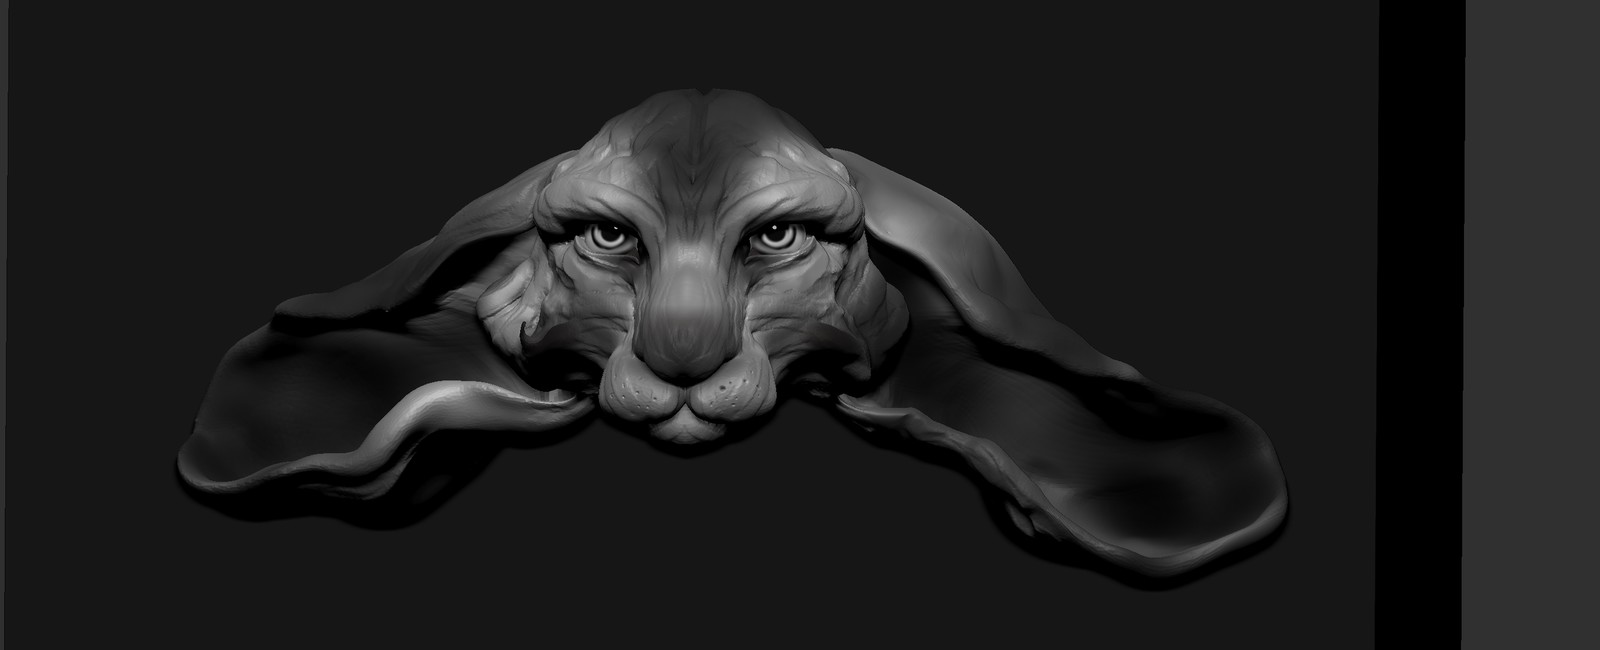 WIP speed sculpt based upon an original concept by Beth Cavener